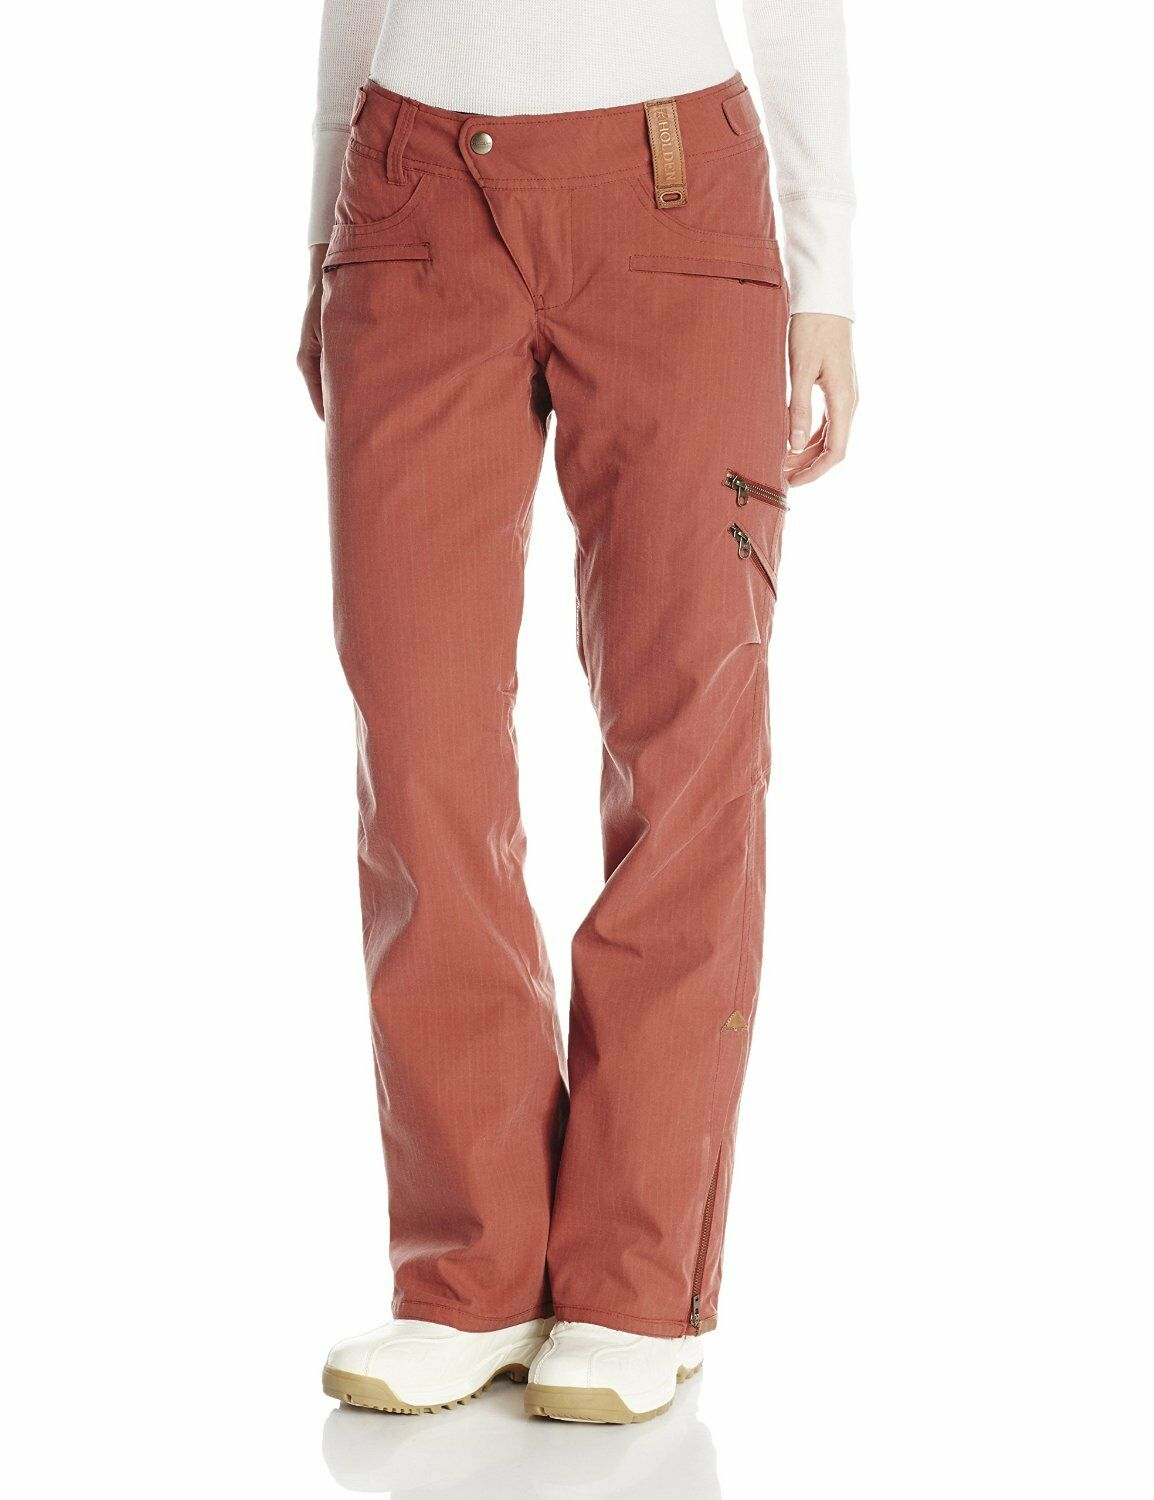 HOLDEN Women's HARVEY Snow Pants - Burnt Henna - Large - NWT